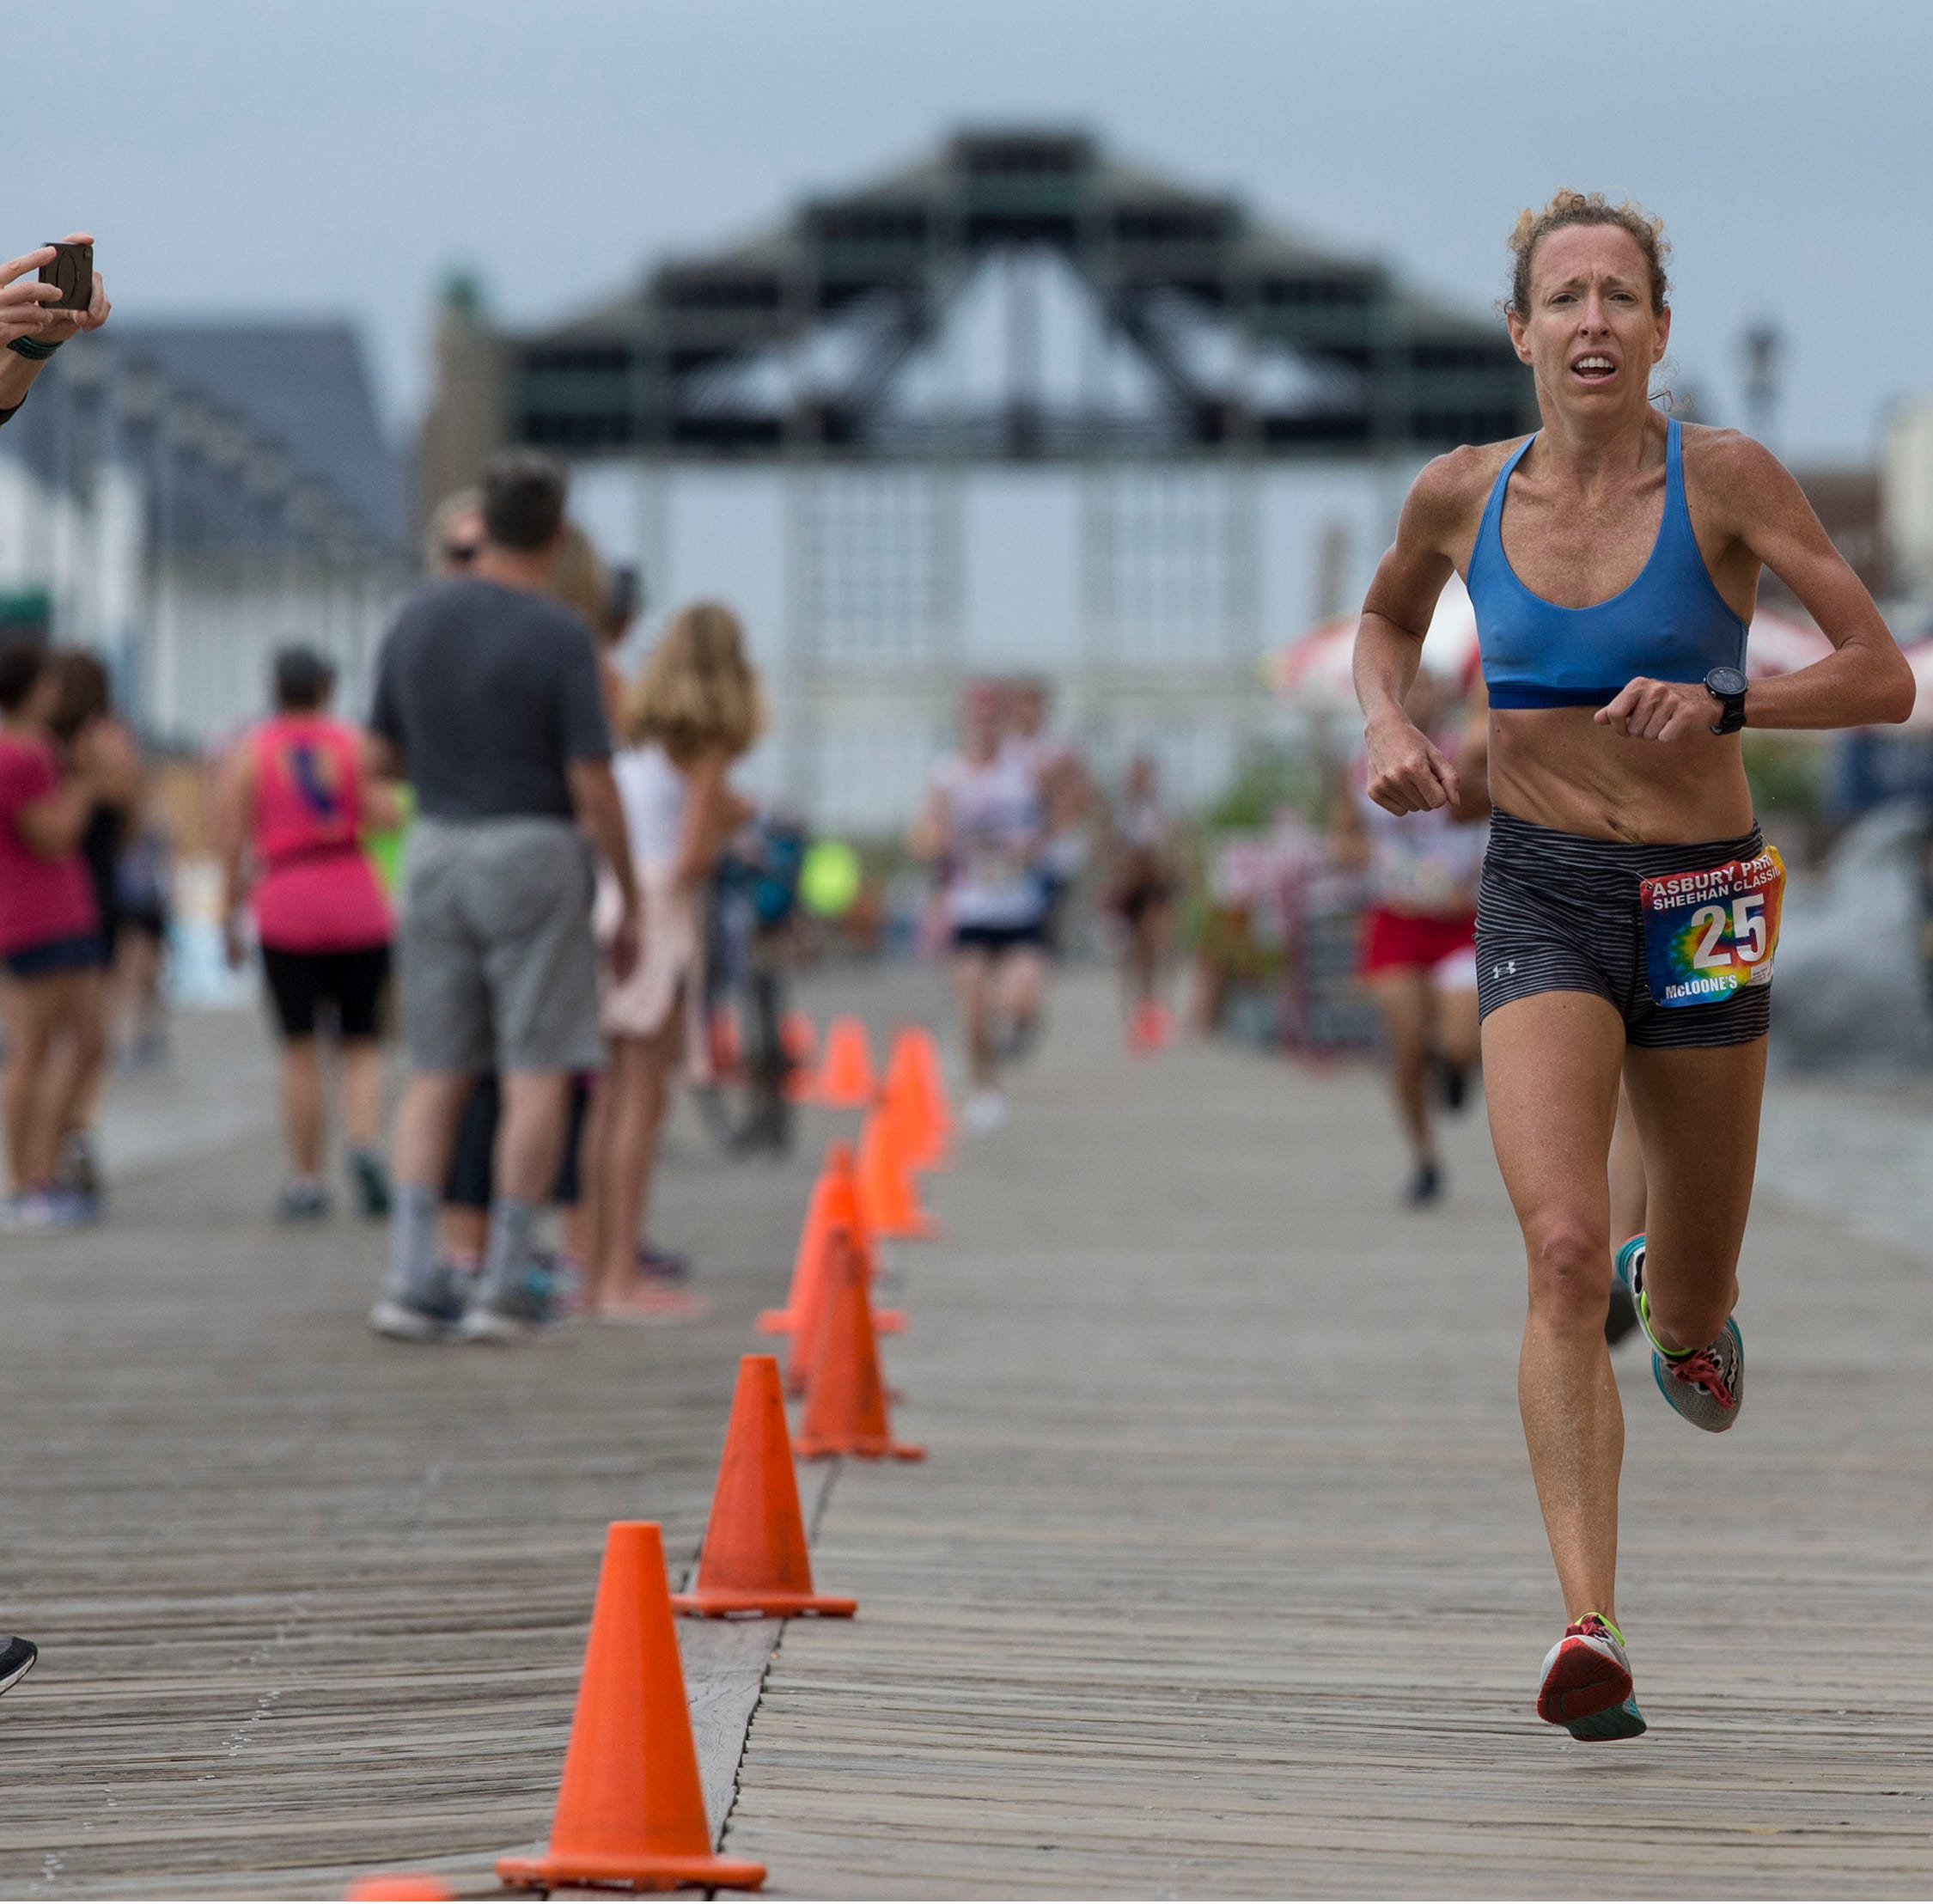 Asbury Park Sheehan Classic 5K: Scheid, Groner lead the way